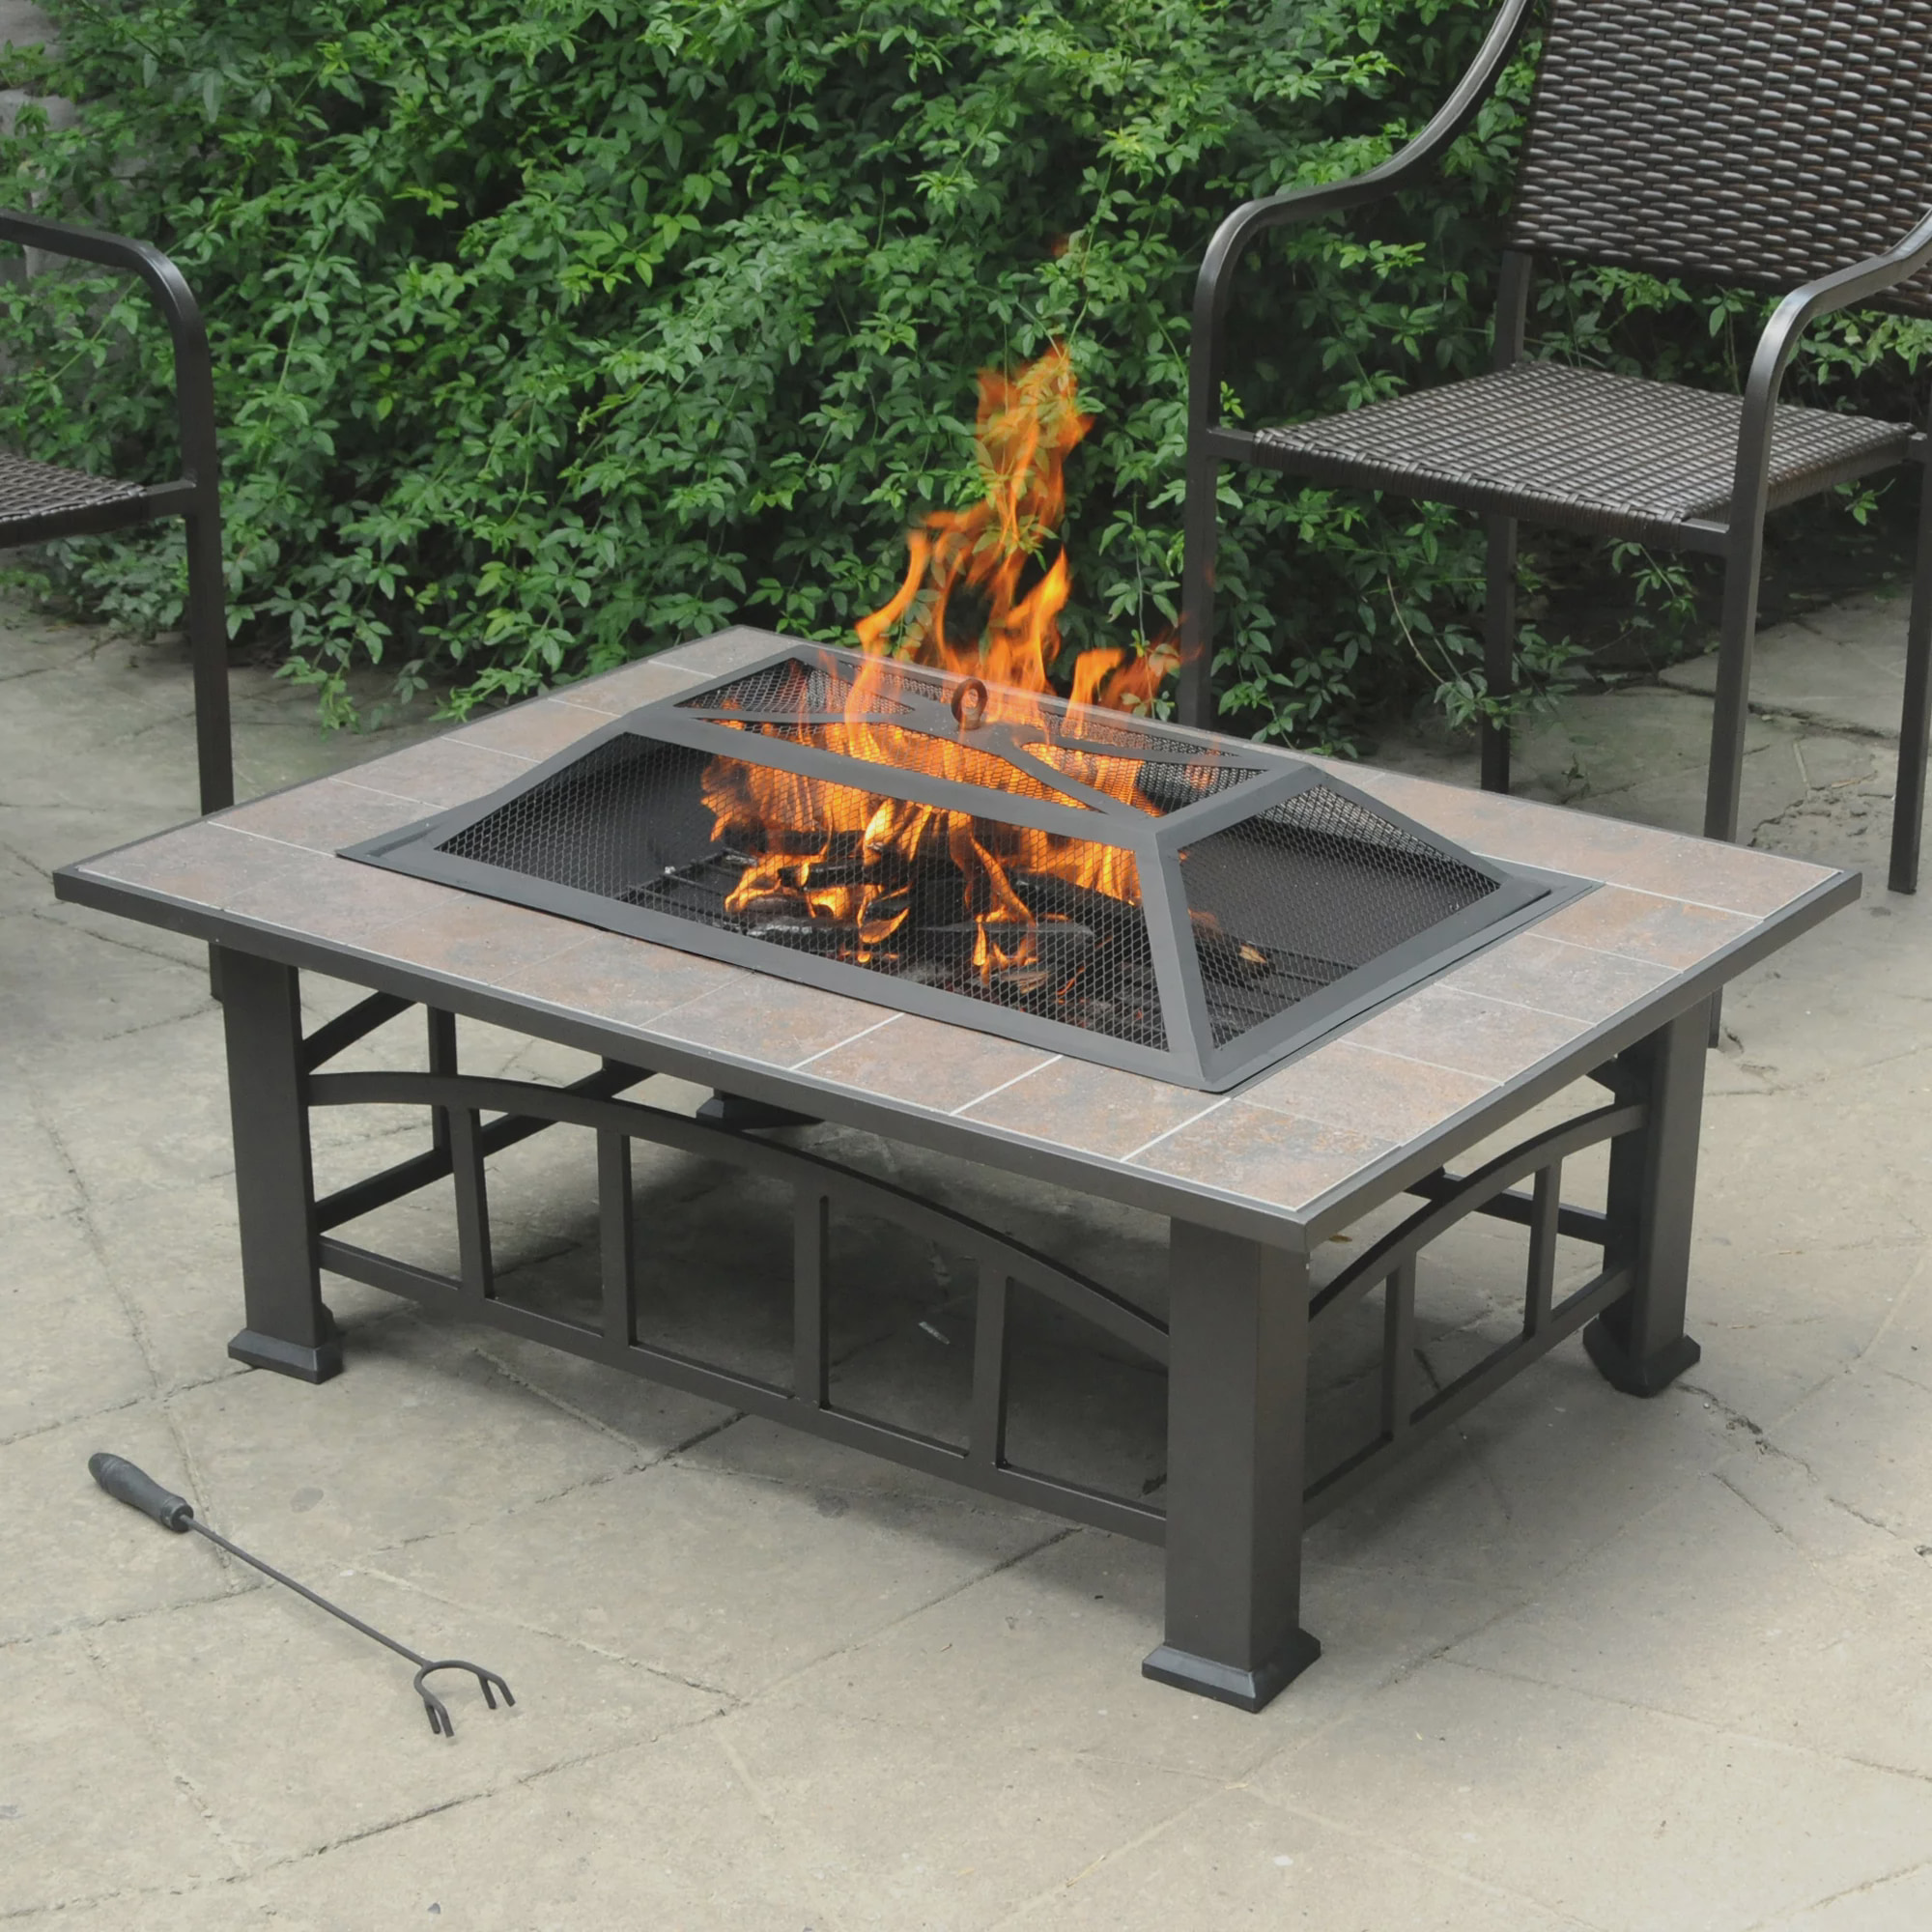 Axxonn Rectangular Tile Top Fire Pit Brownish Bronze 37 X 28 Wood Burning Fire Bowl Walmart Com Walmart Com